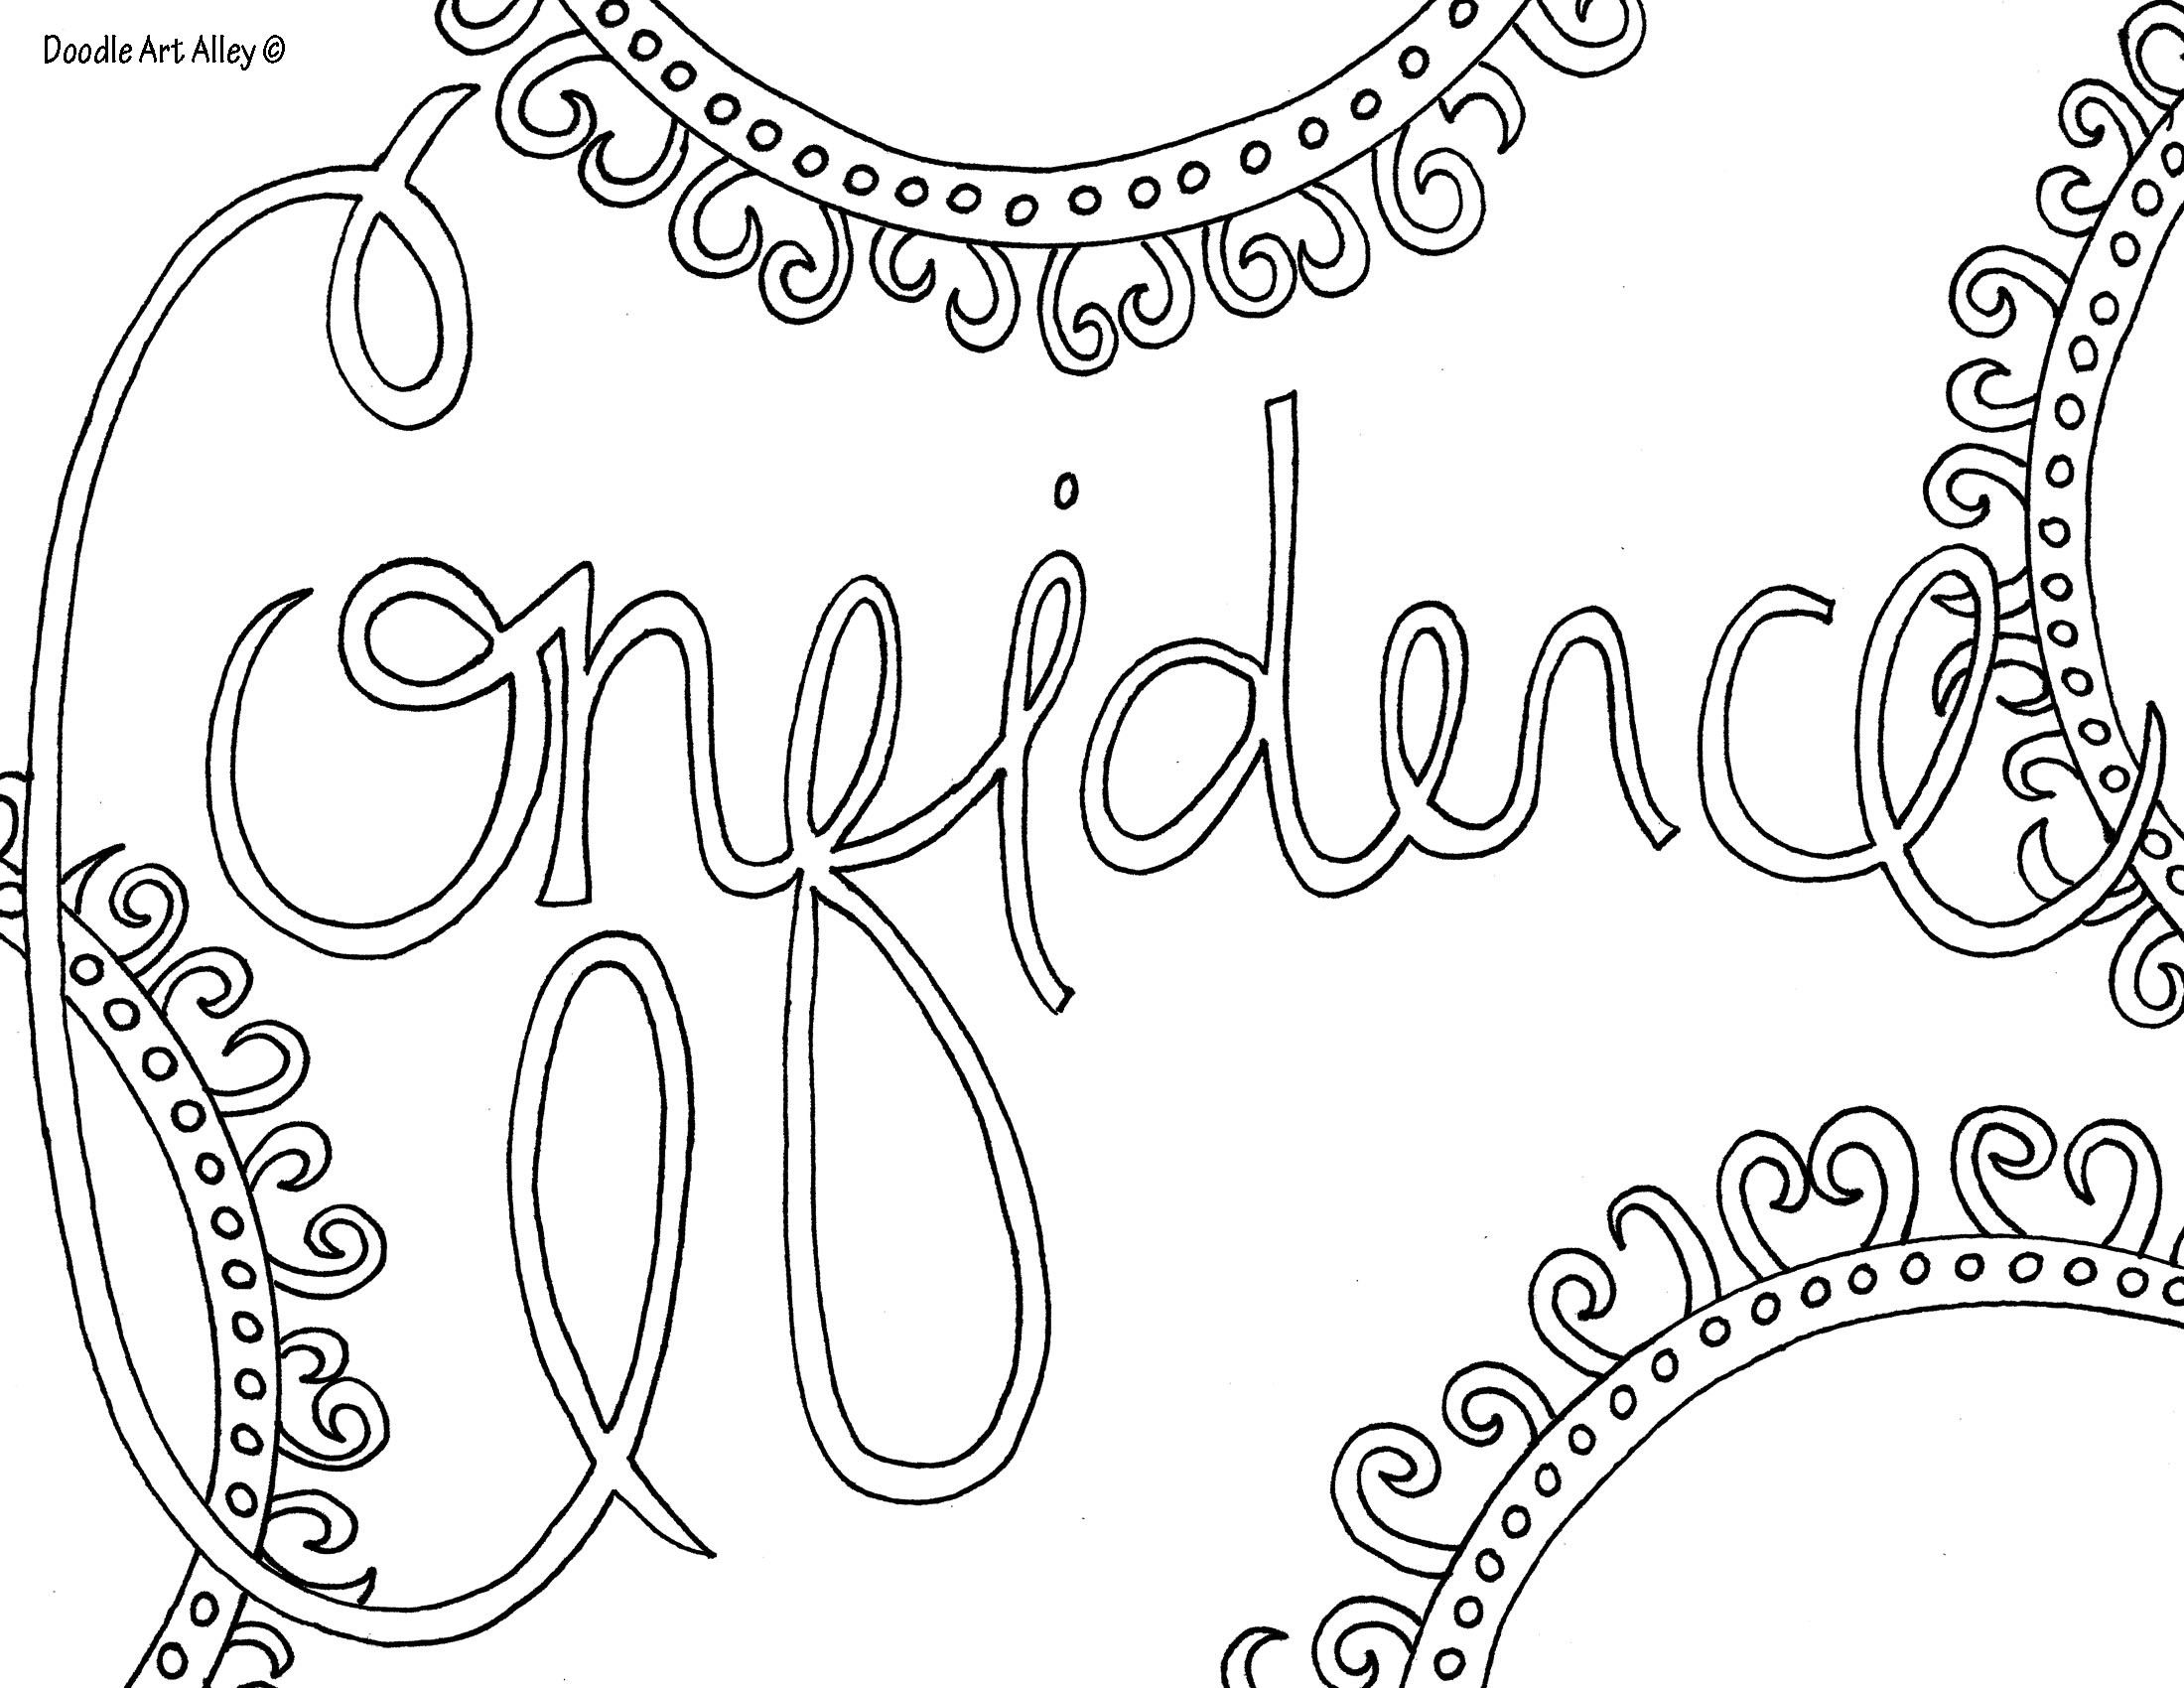 confidence coloring page - Simple Therapeutic Coloring Pages